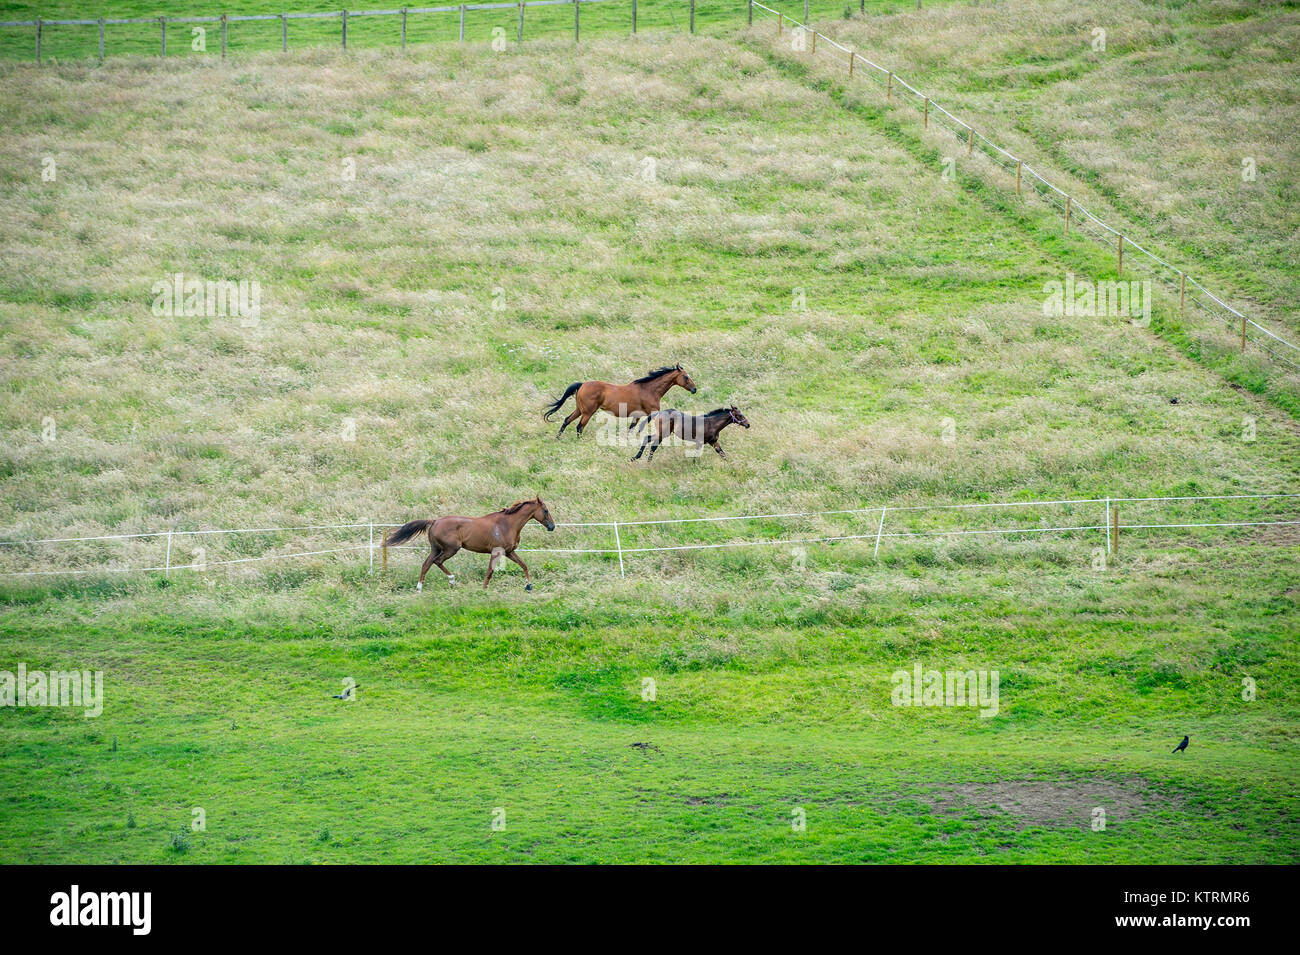 spirited team of racing horses gallop through grassy meadow stock